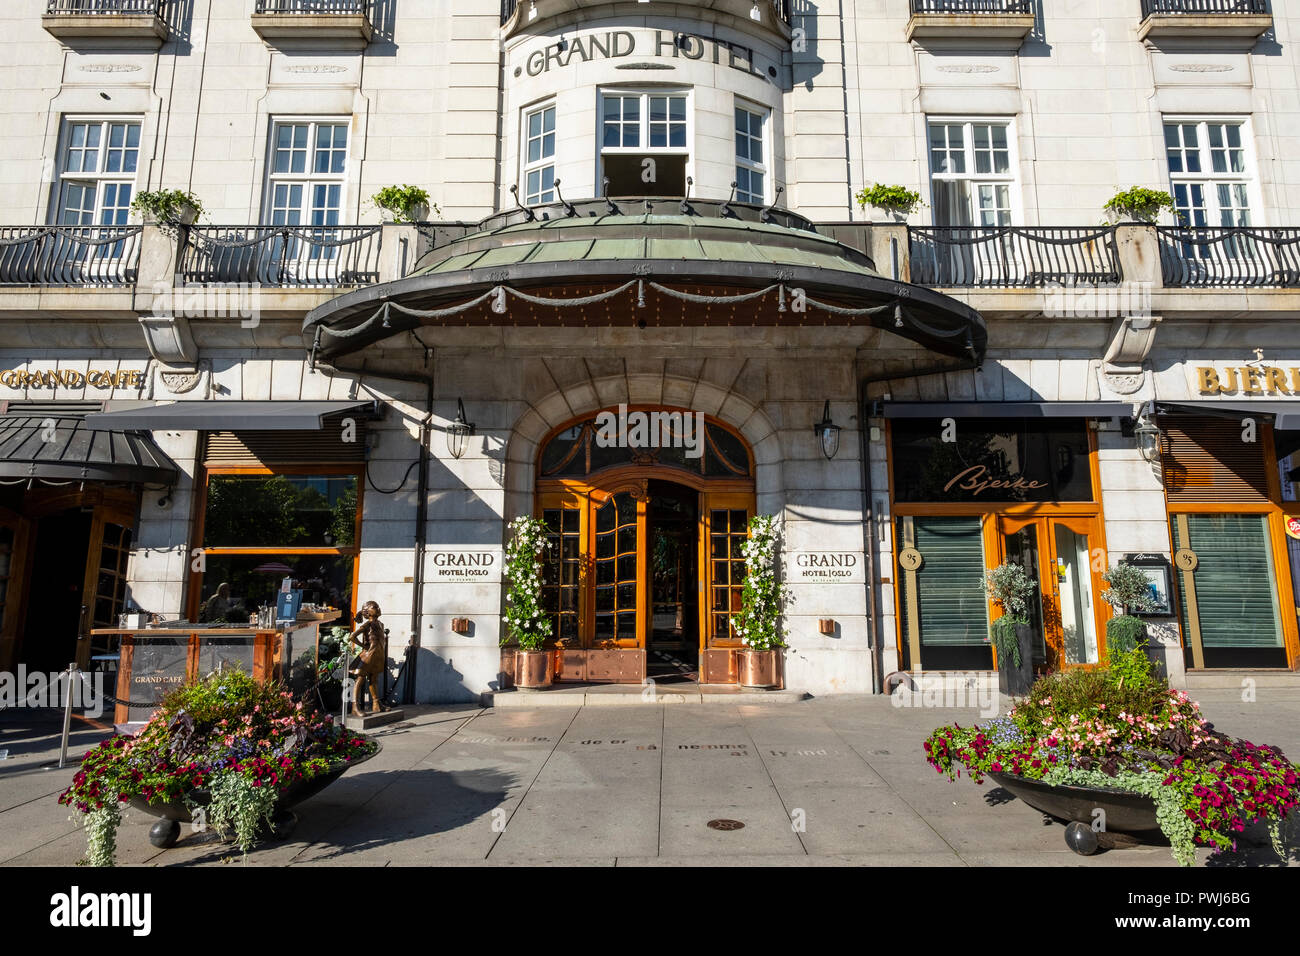 Entrance to Grand hotel, and the balcony where the Nobel Peace price winner meet the people of Oslo. - Stock Image